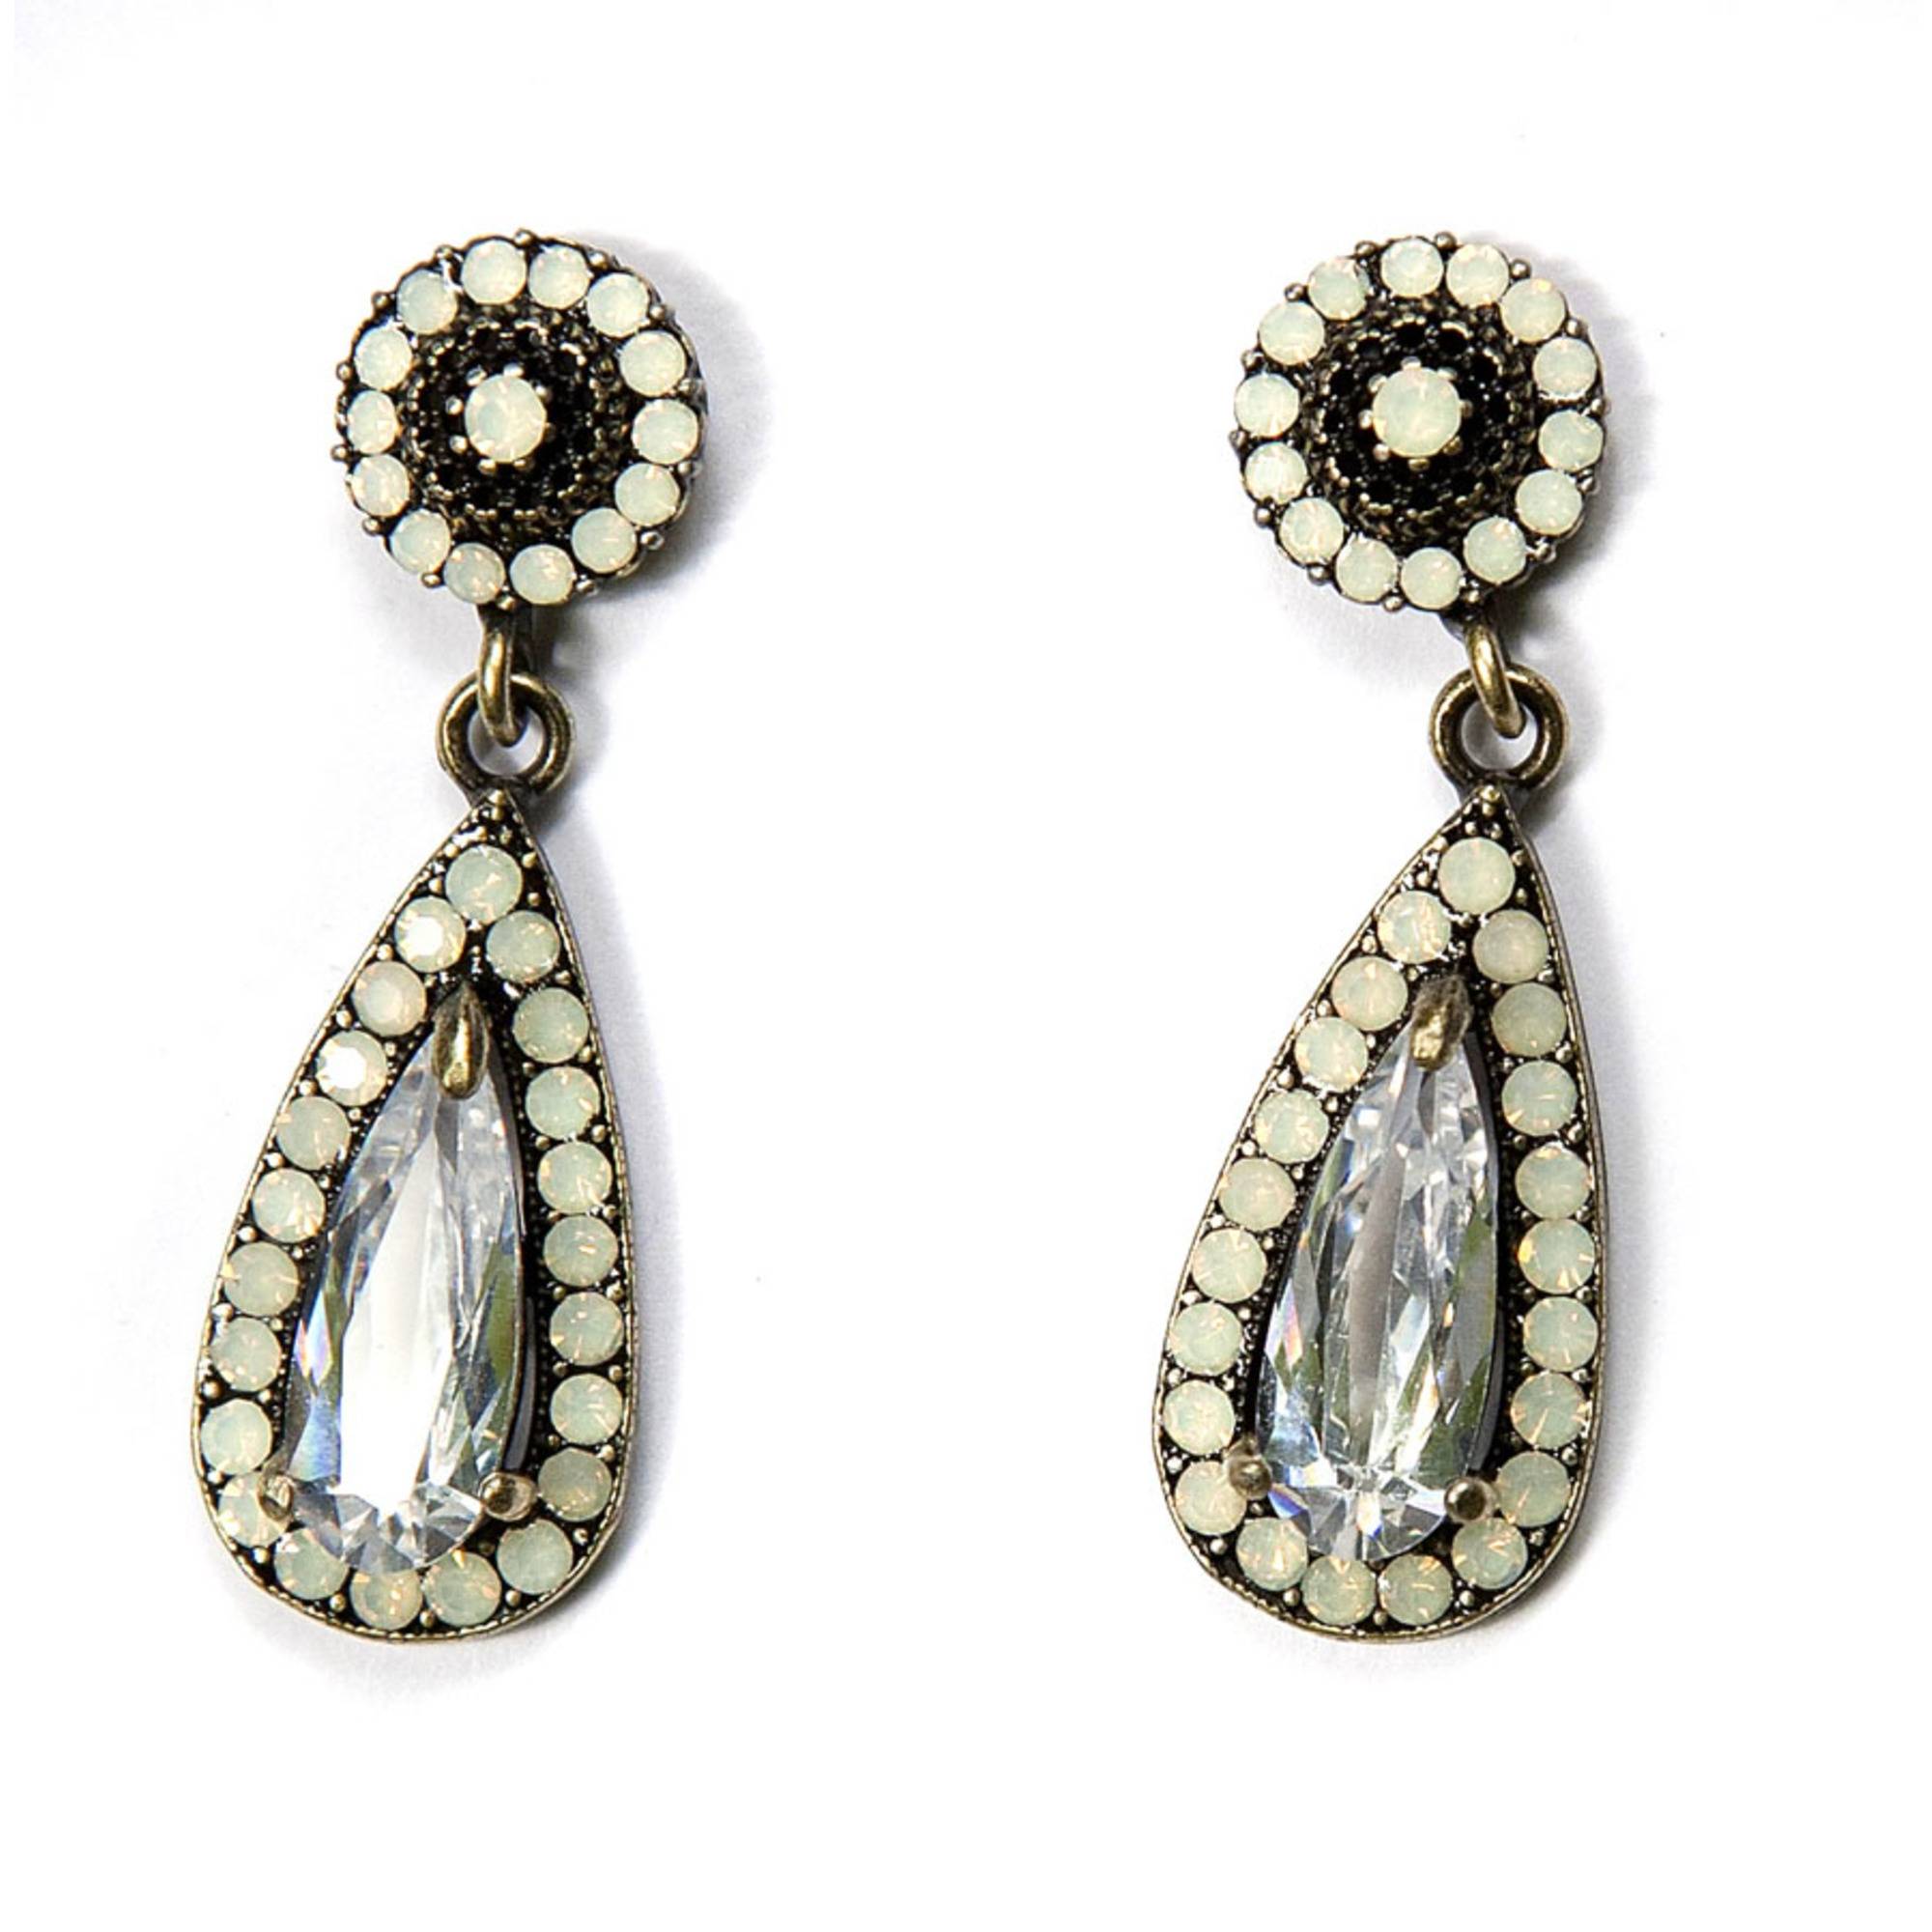 Tear Drop Earring - White Opal Silver